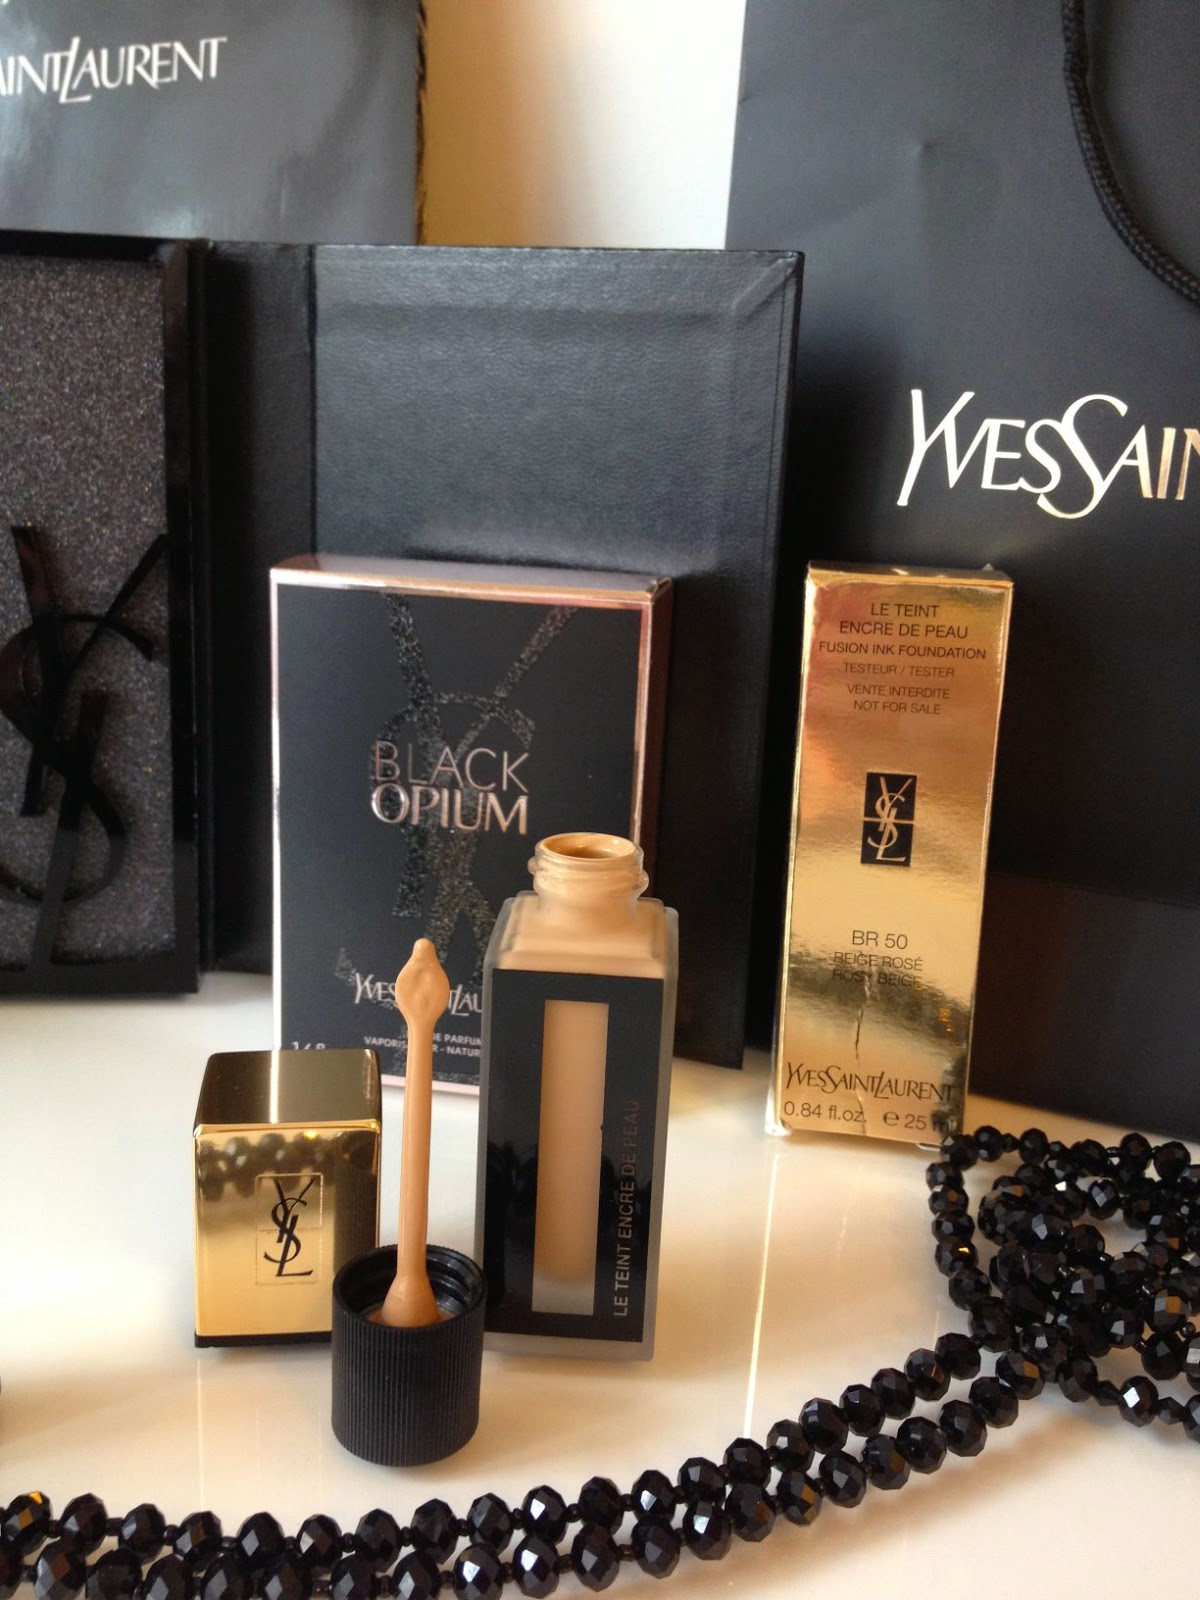 Teint Encre de Peau, new foundation from Yves Saint Laurent Beauté, Fashion and Cookies, fashion blogger